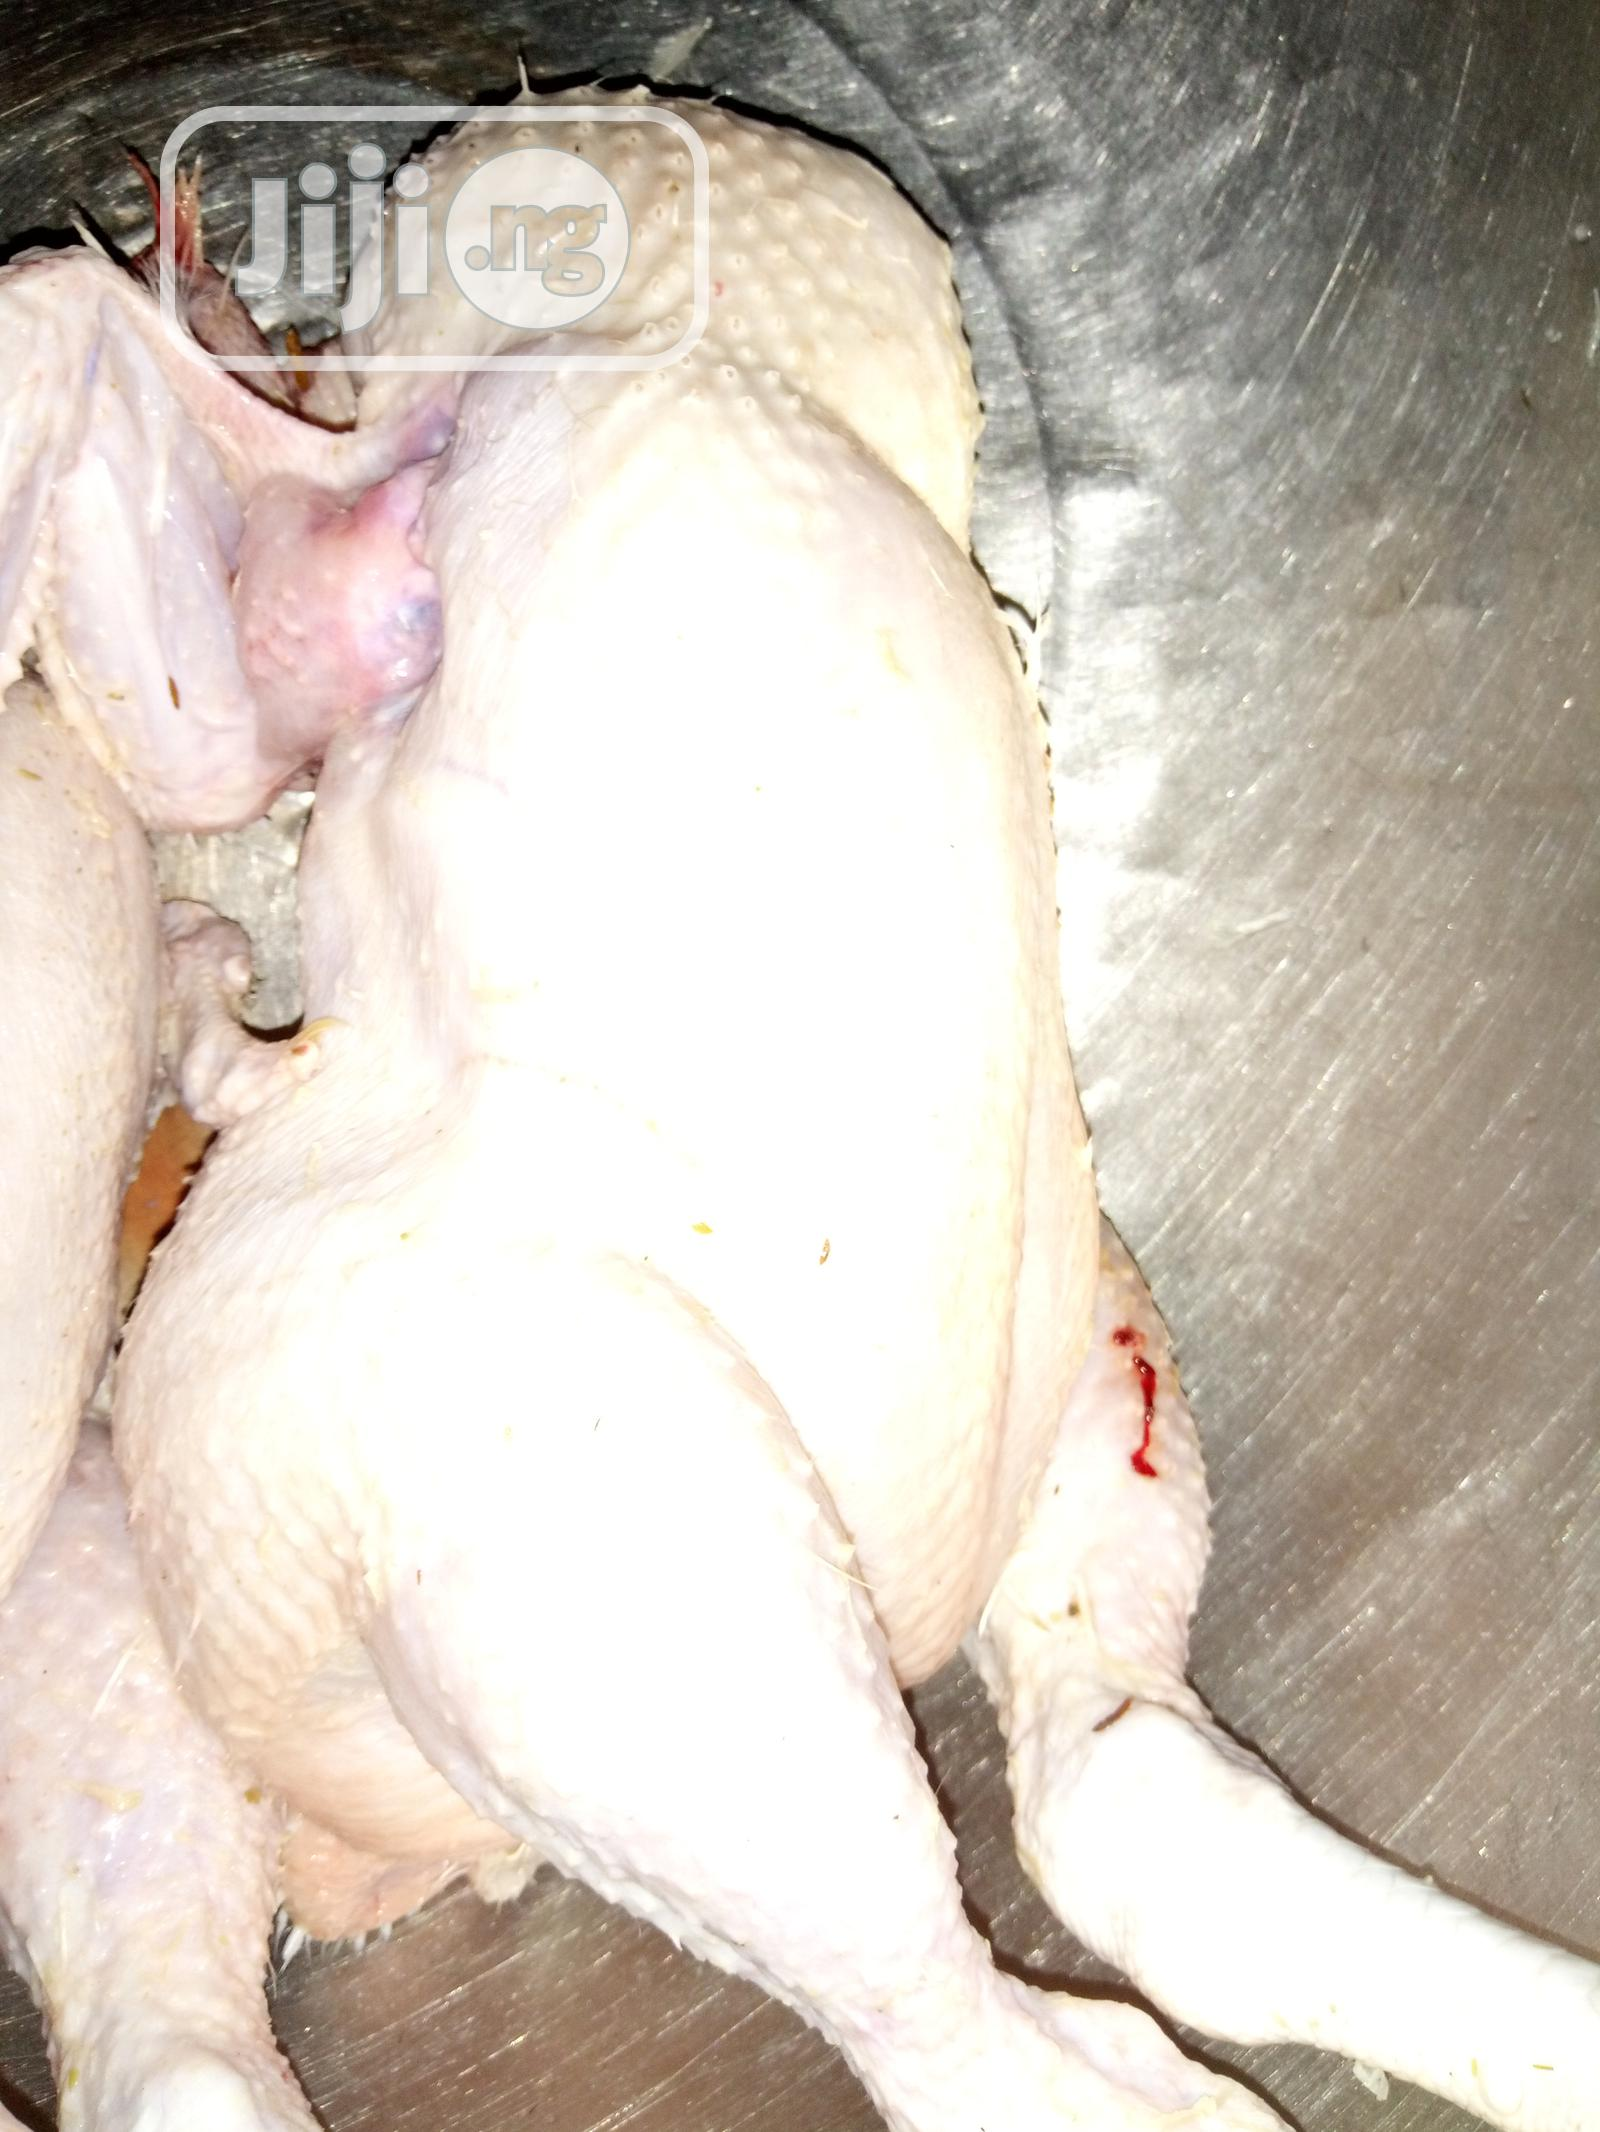 3kg Broilers Chickens   Livestock & Poultry for sale in Jikwoyi, Abuja (FCT) State, Nigeria